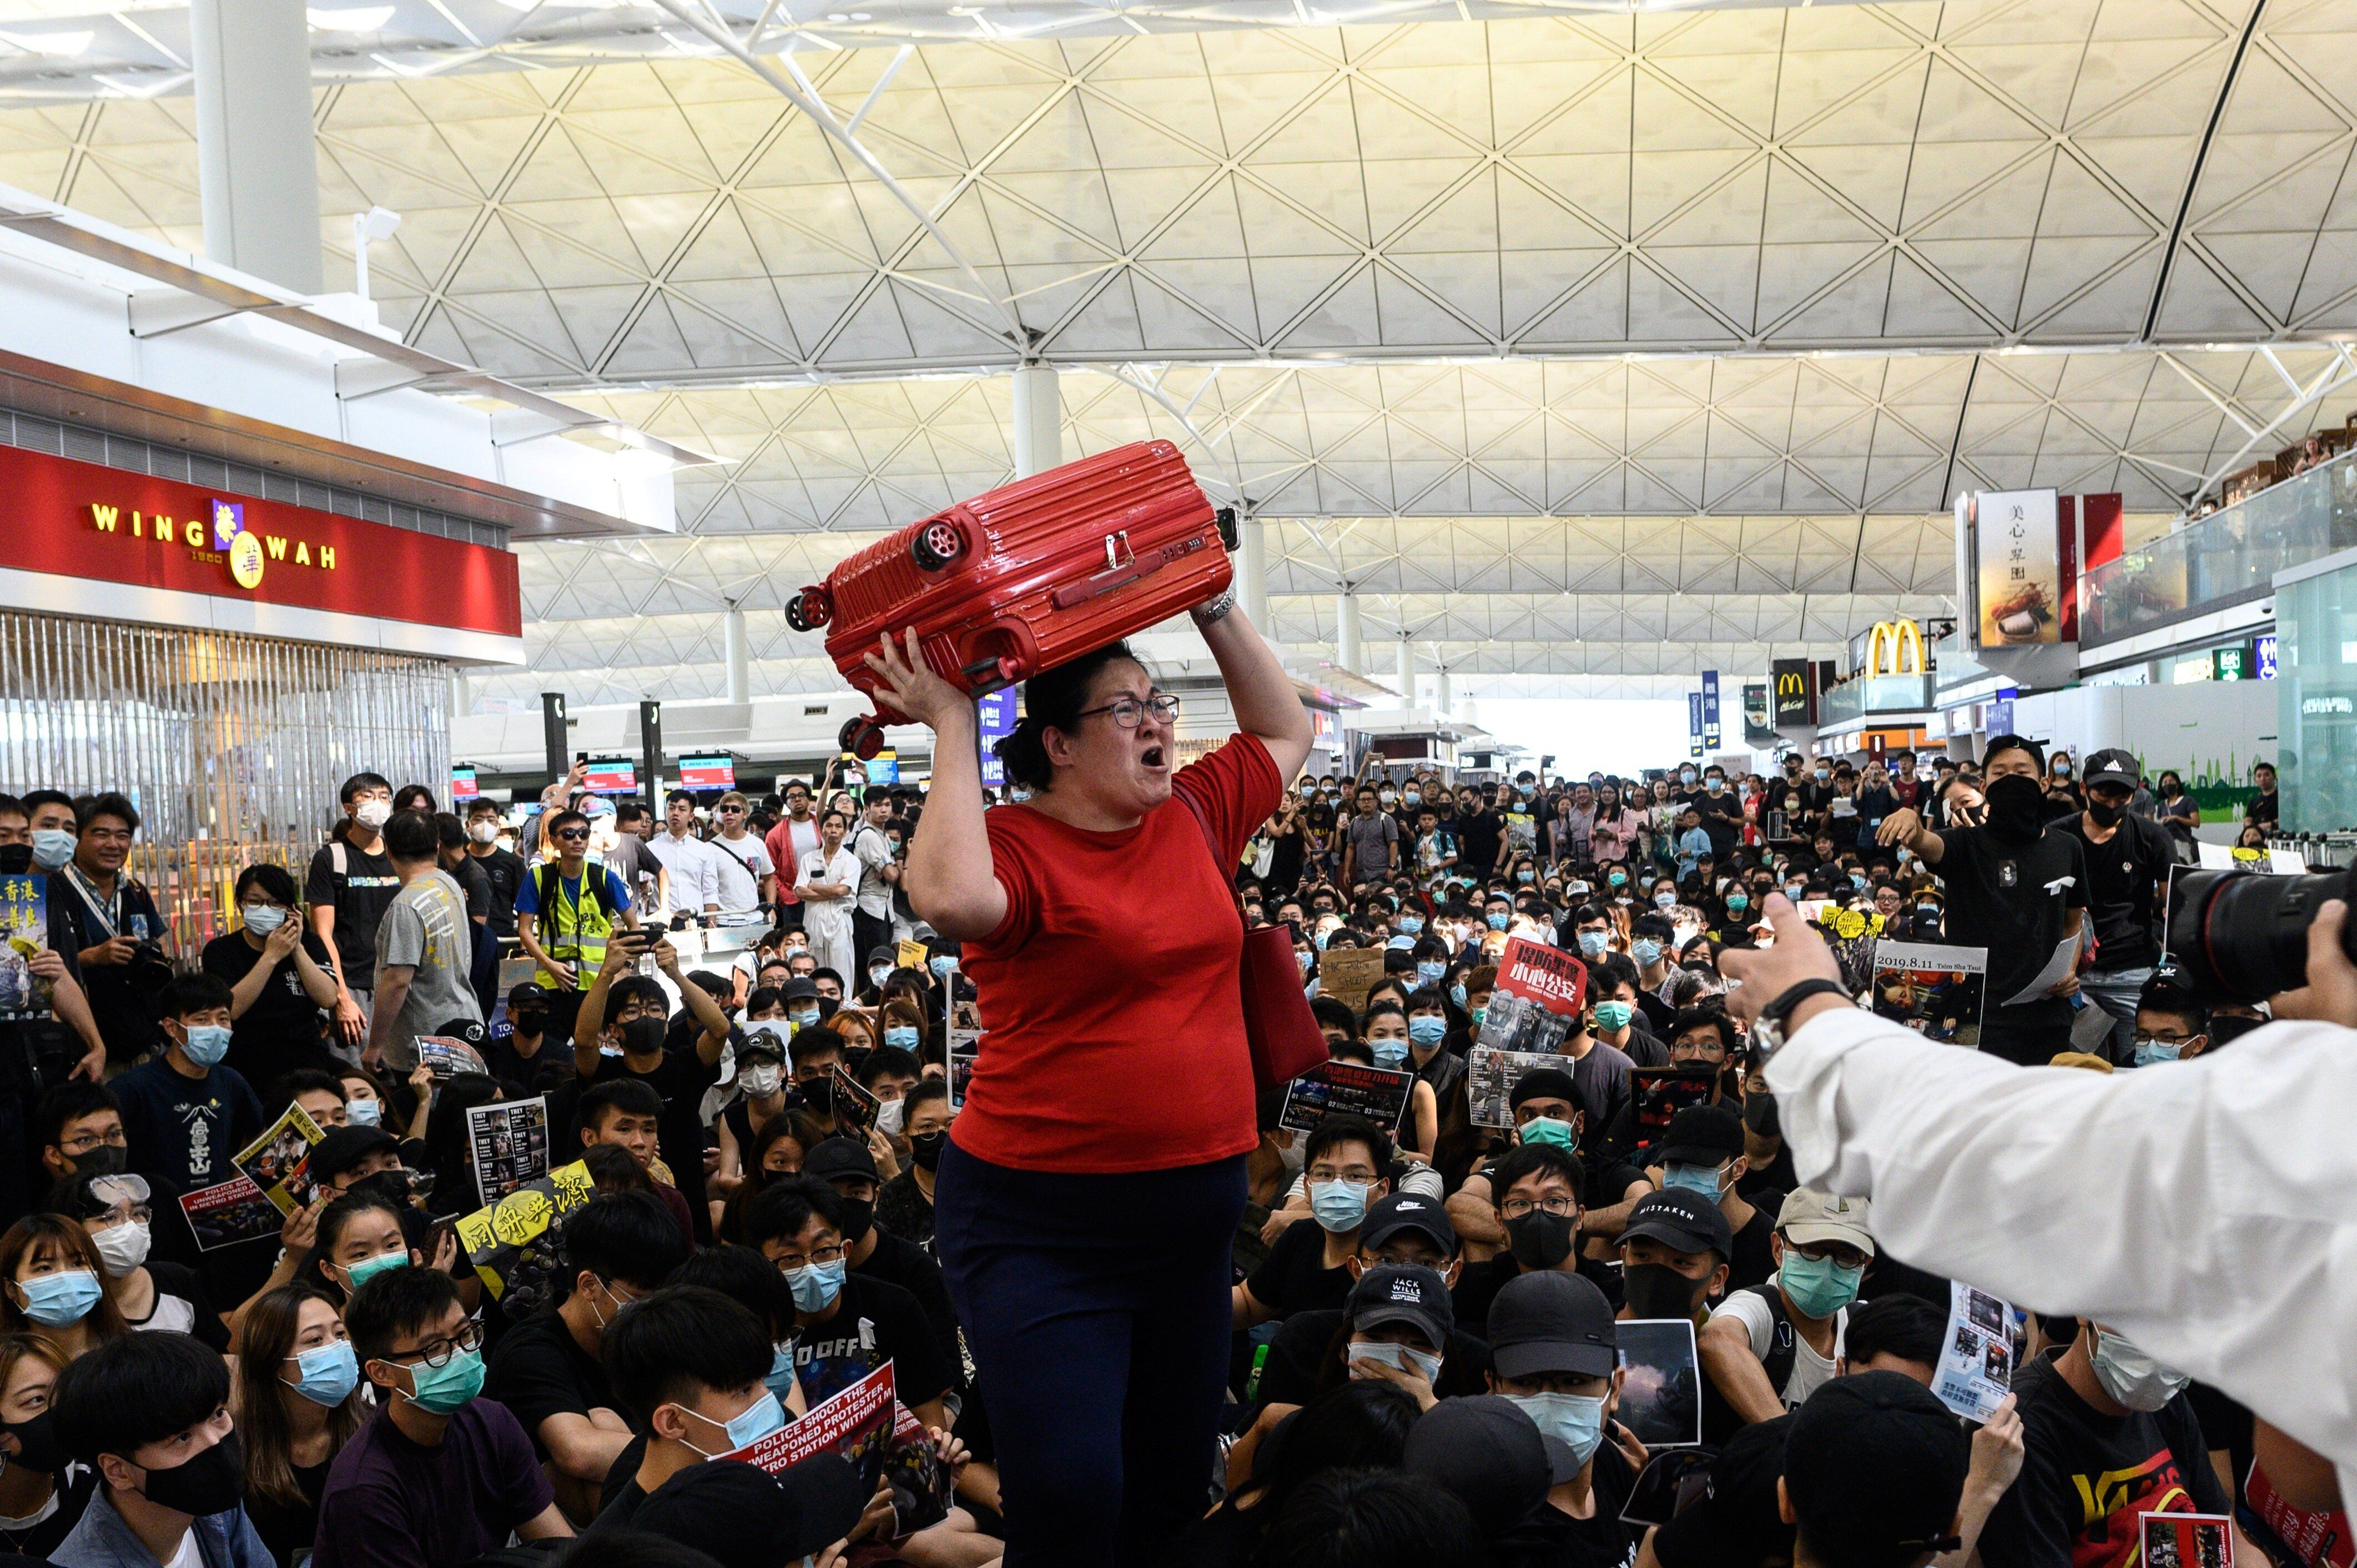 Hong Kong Flights Canceled Again As Protesters Take Over Airport Terminals